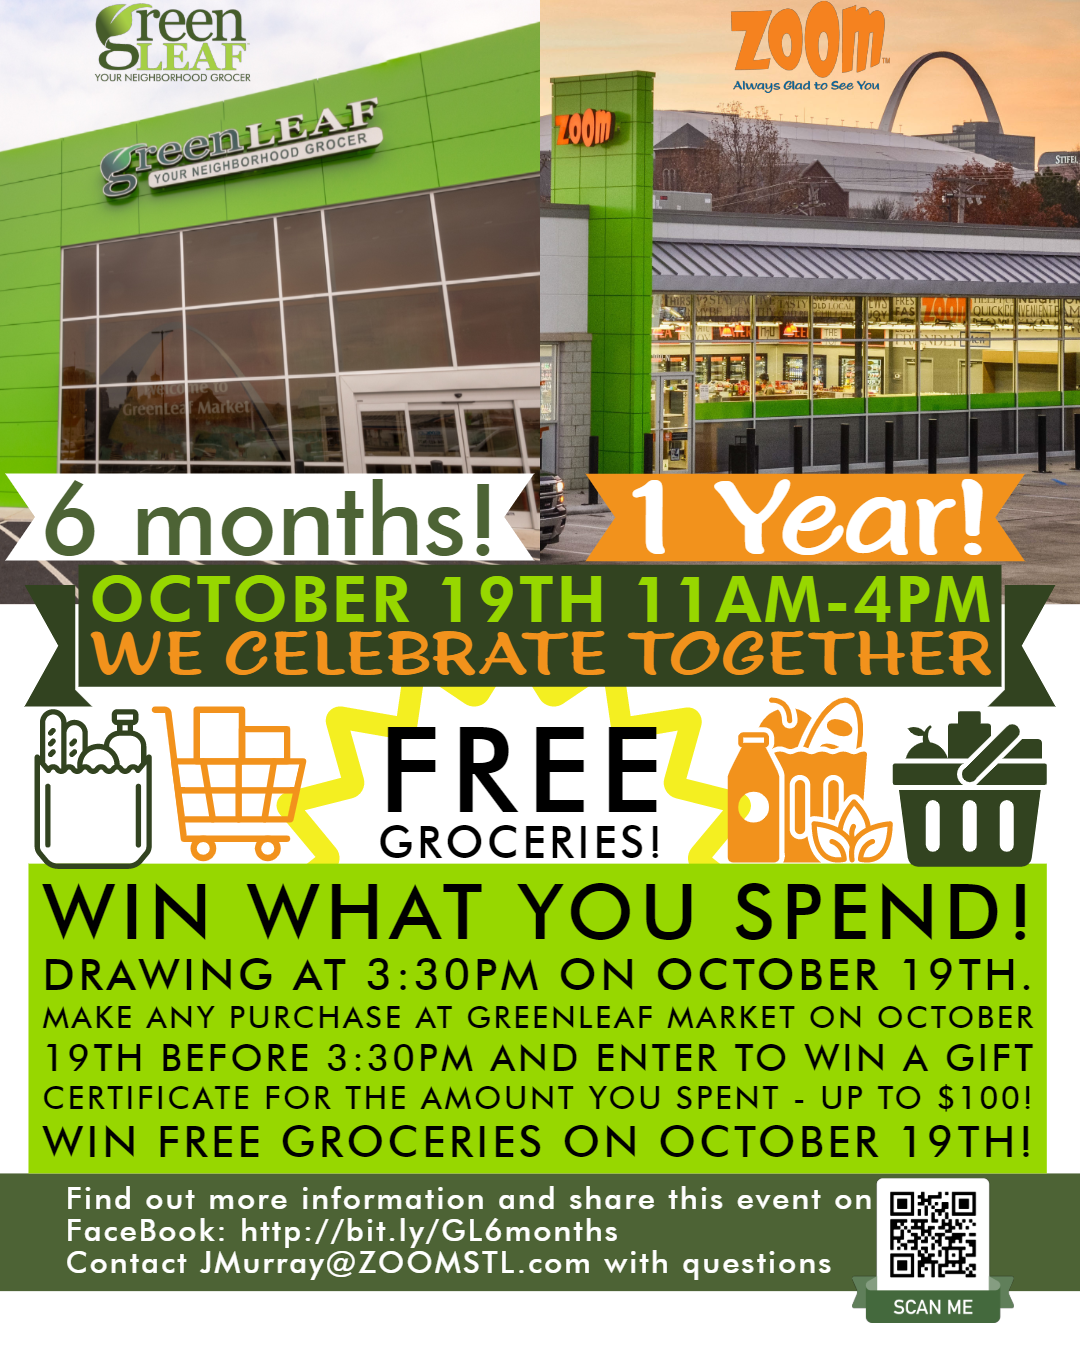 Zoom Convenience Store St. Louis Anniversary October 19